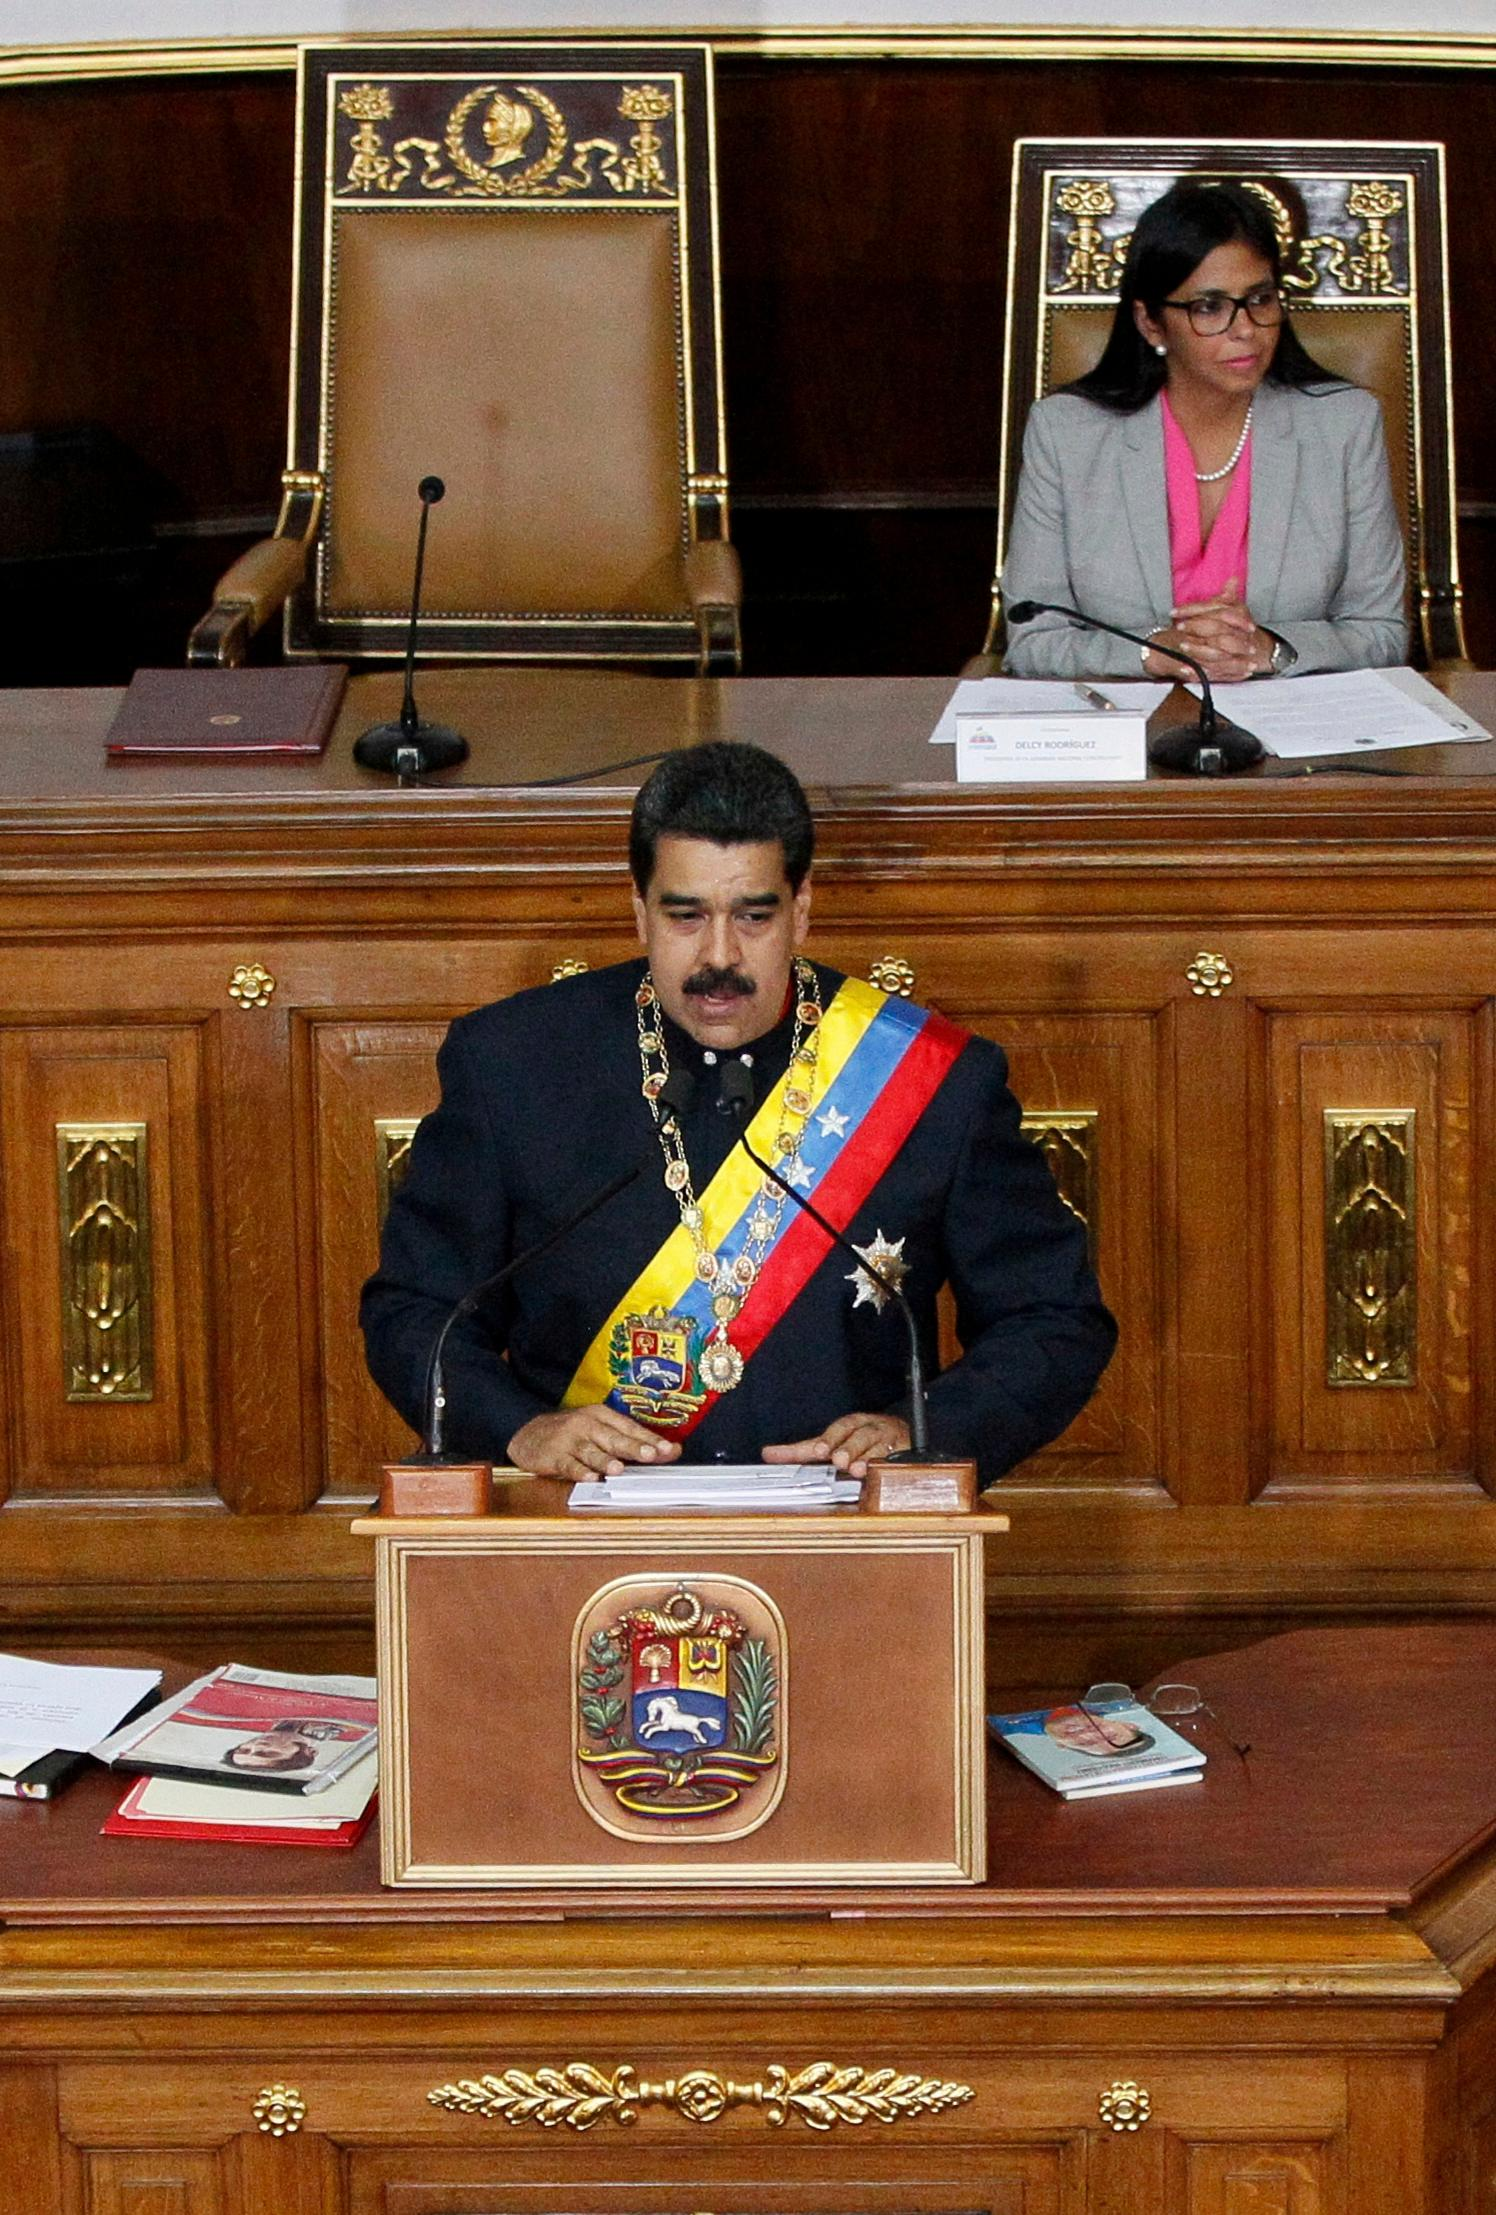 Venezuela's President Nicolas Maduro addresses Constitutional Assembly members during a special session at the National Assembly building in Caracas, Venezuela, Thursday, Aug. 10, 2017.  Behind is the president of the new constitutional assembly, Delcy Rodriguez. The new constitutional assembly has declared itself as the superior body to all other governmental institutions, including the opposition-controlled congress. (AP Photo/Ariana Cubillos)